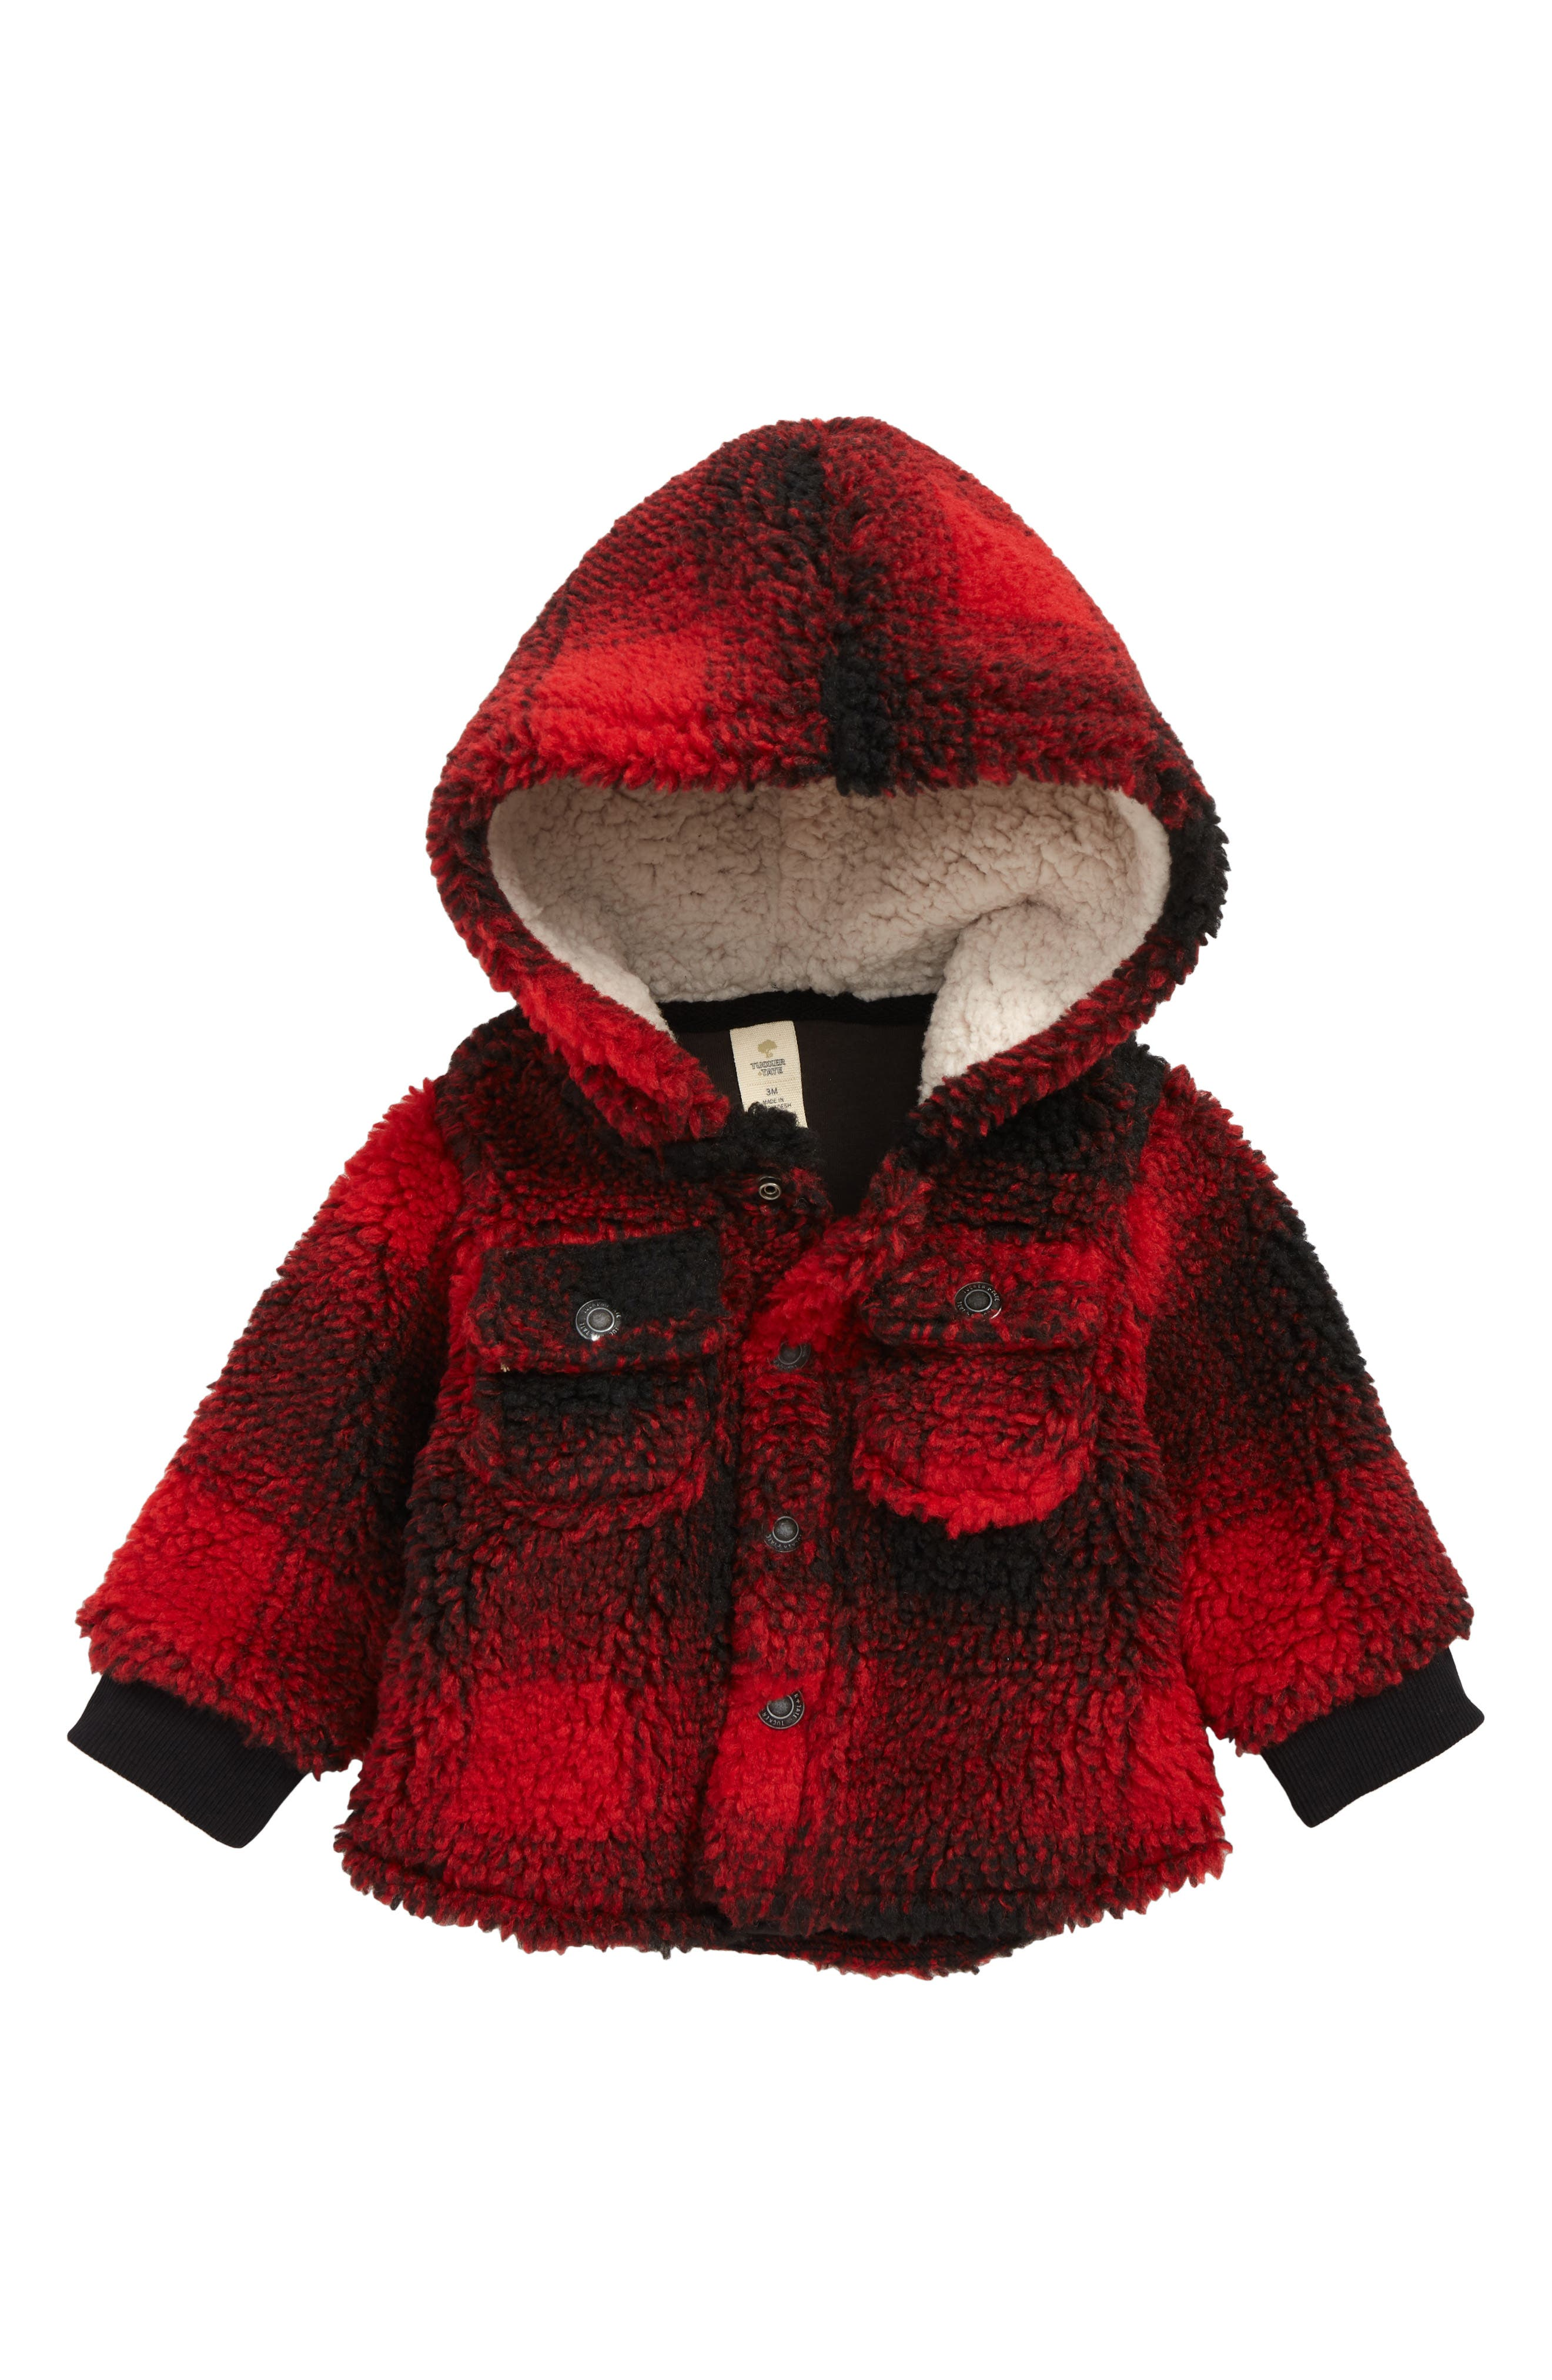 Check Hooded Fleece Jacket,                         Main,                         color, RED RIBBON- BLACK SHADOW PLAID